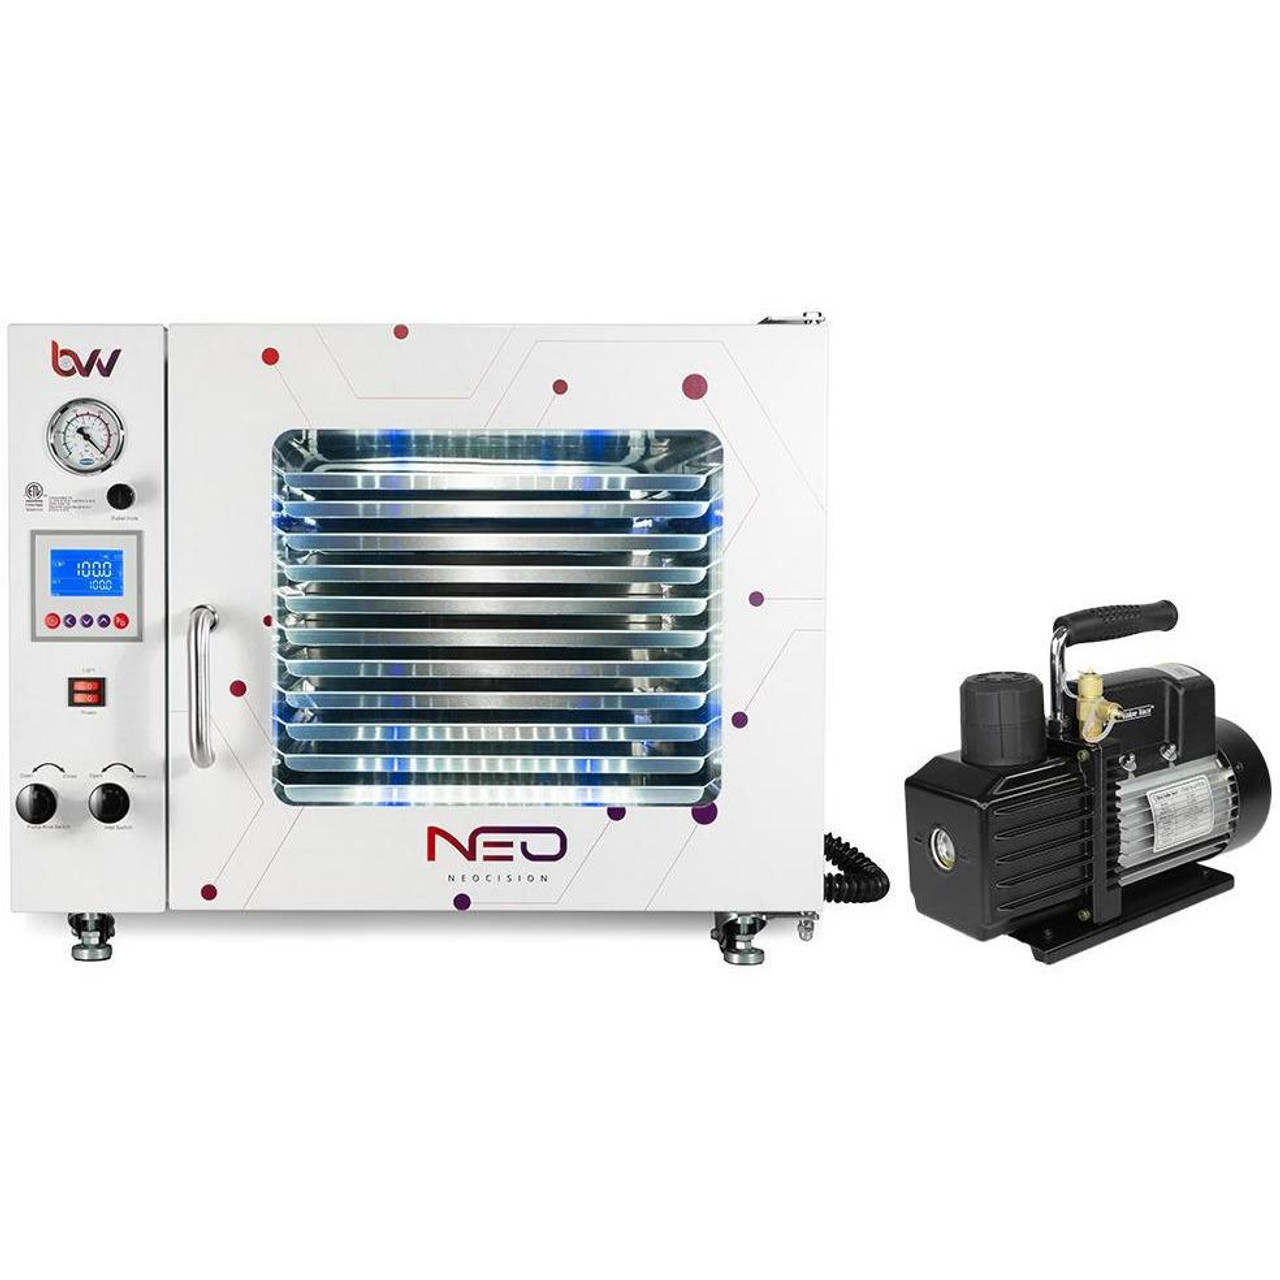 1.9CF BVV Neocision Certified Lab Vacuum Oven - 5 Wall Heating, LED Display, 11 Shelves Standard